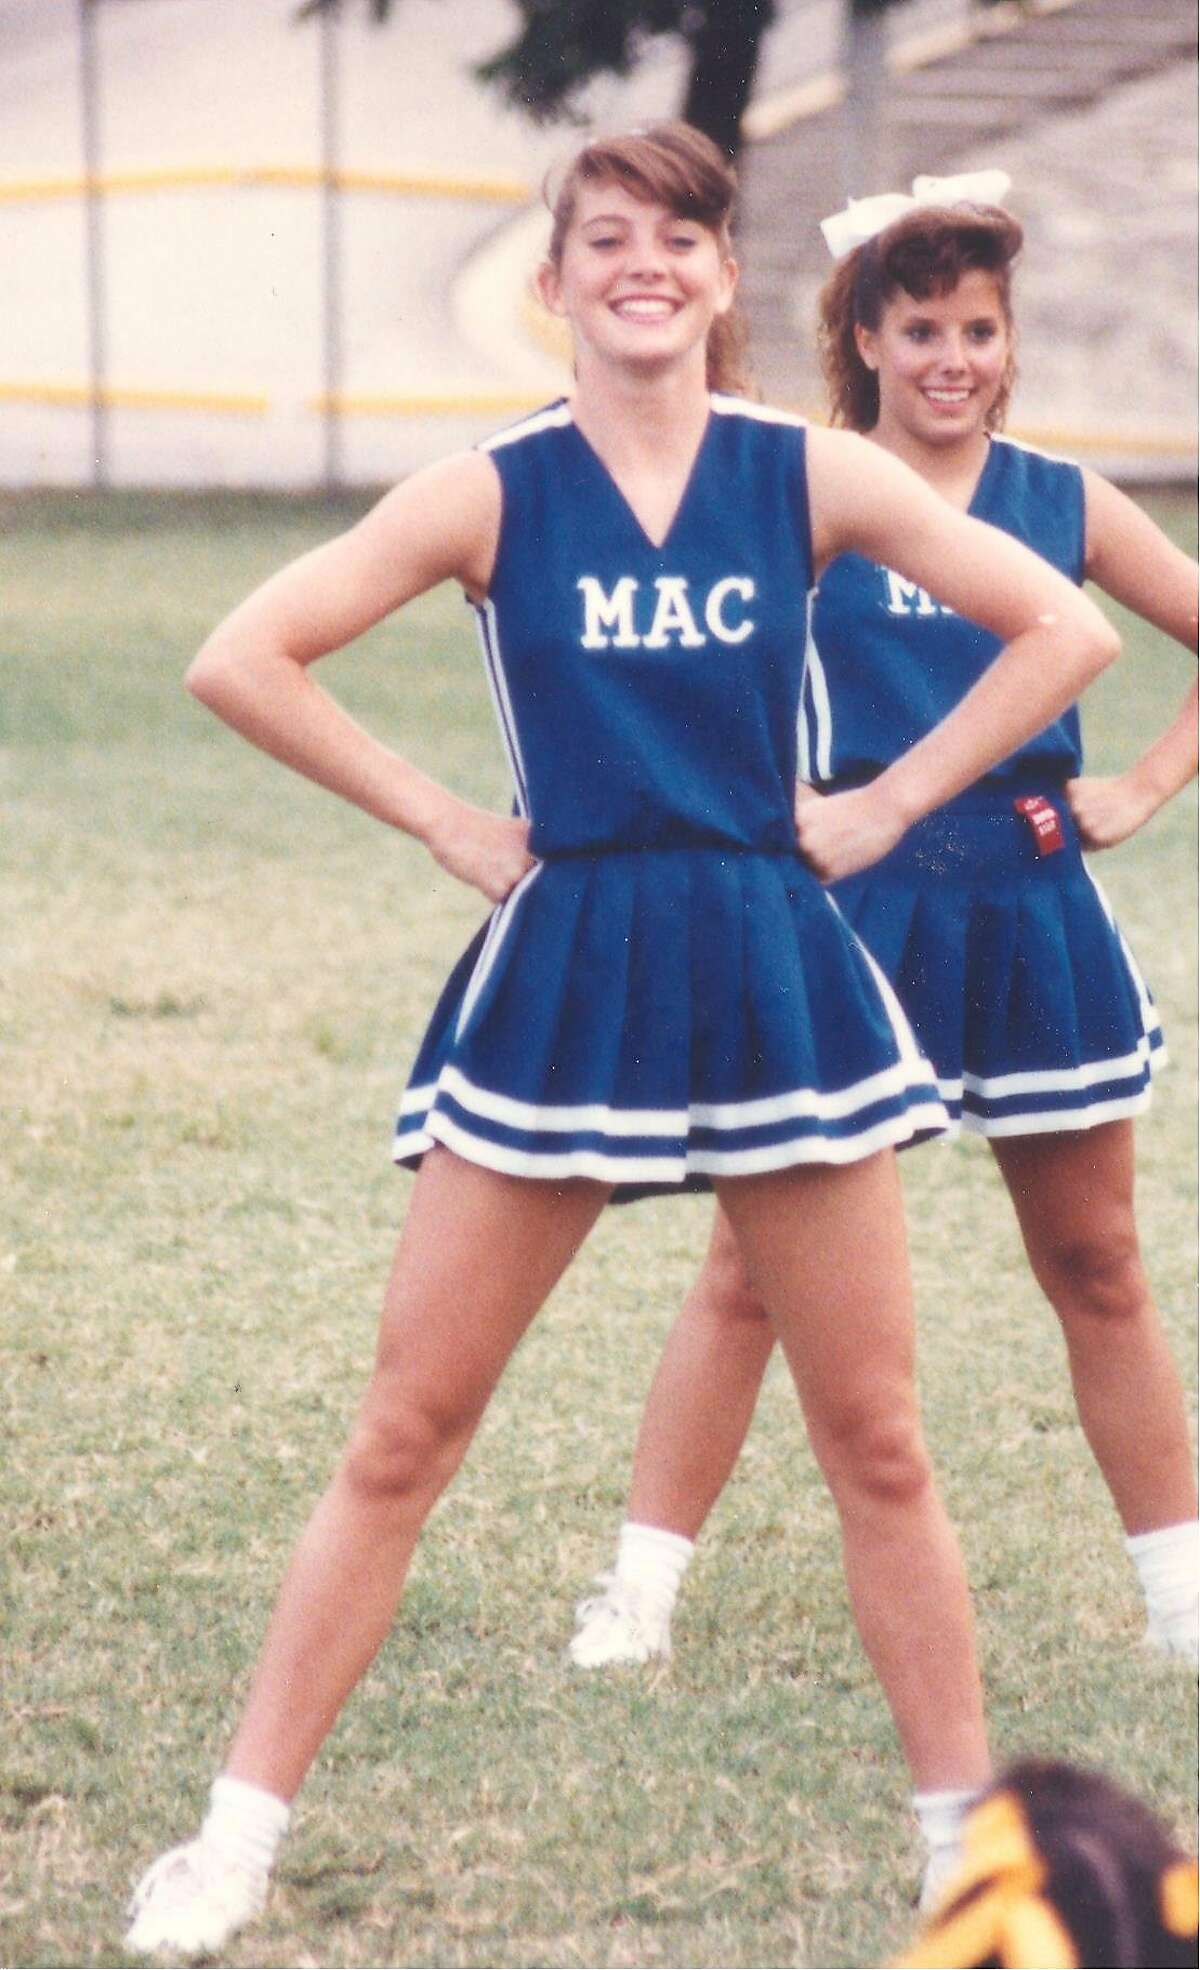 Norah O'Donnell, a member of the class of 1991, was head cheerleader at MacArthur High School